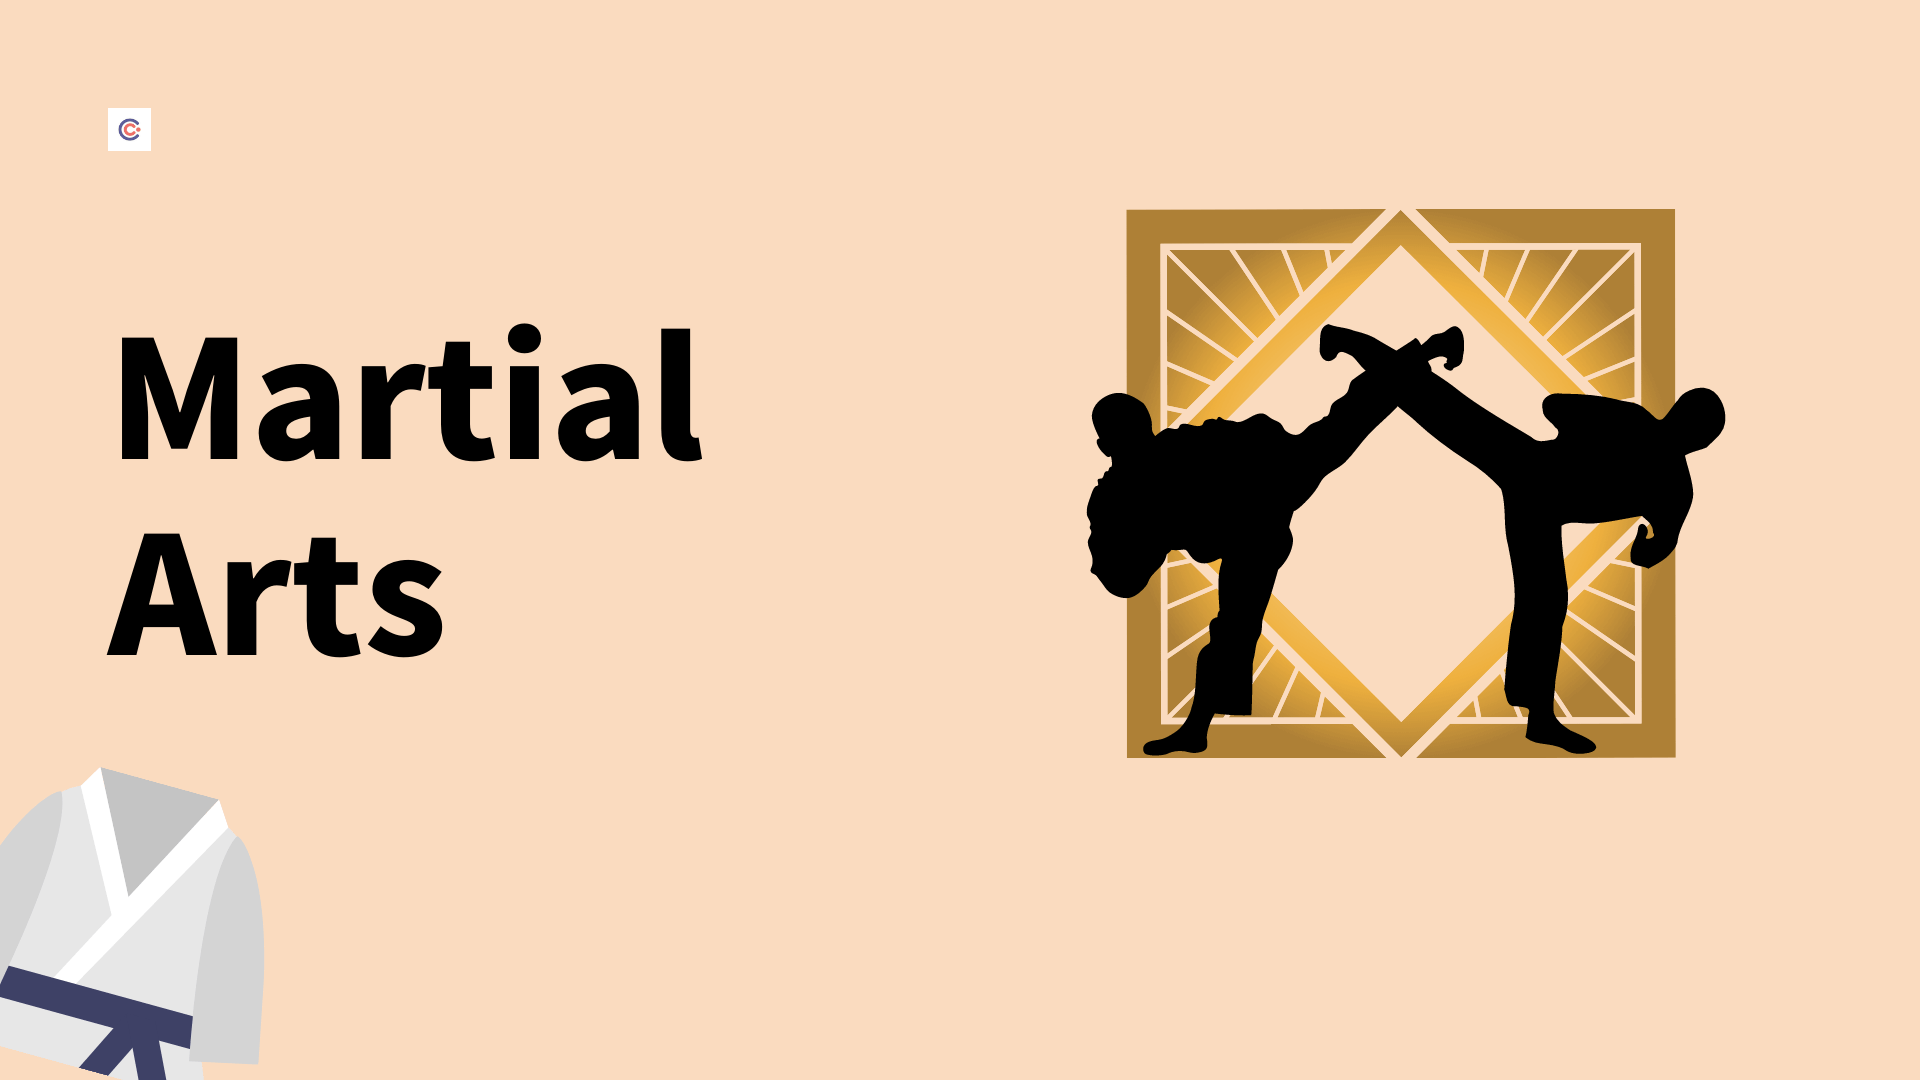 6 Best Martial Arts Training - Learn Martial Arts Online